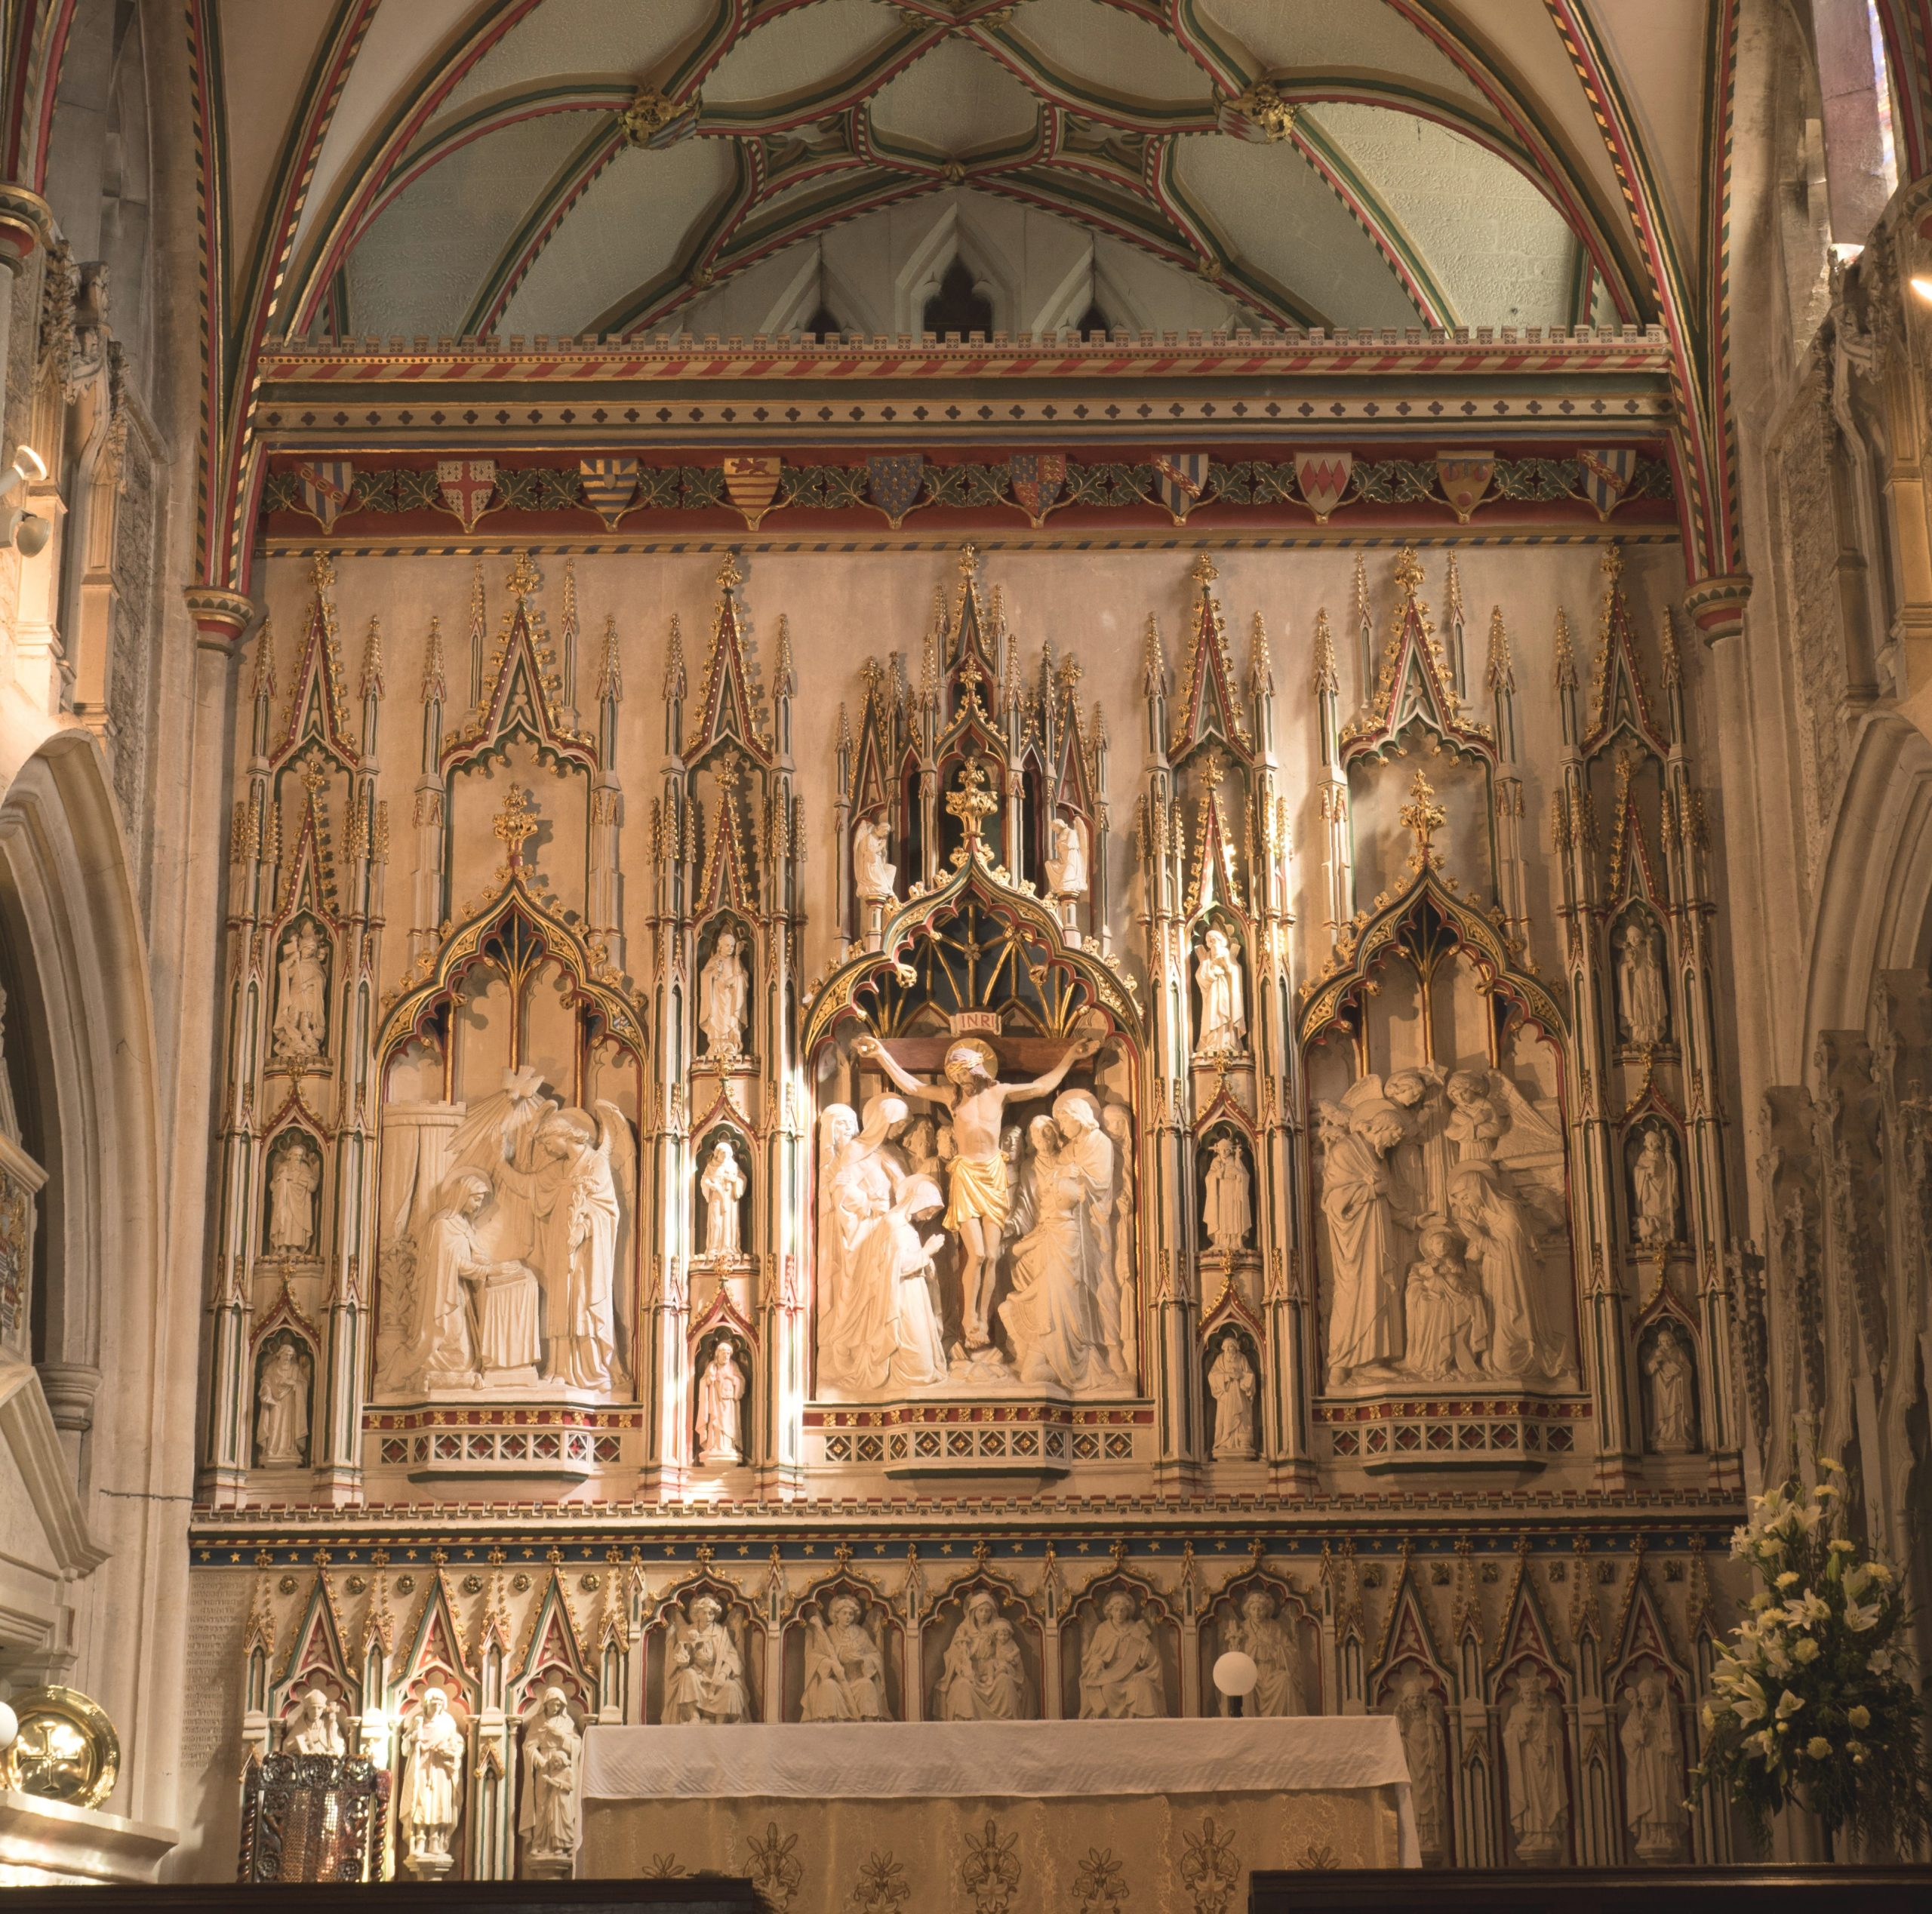 Image of the reredos at Ottery St Mary